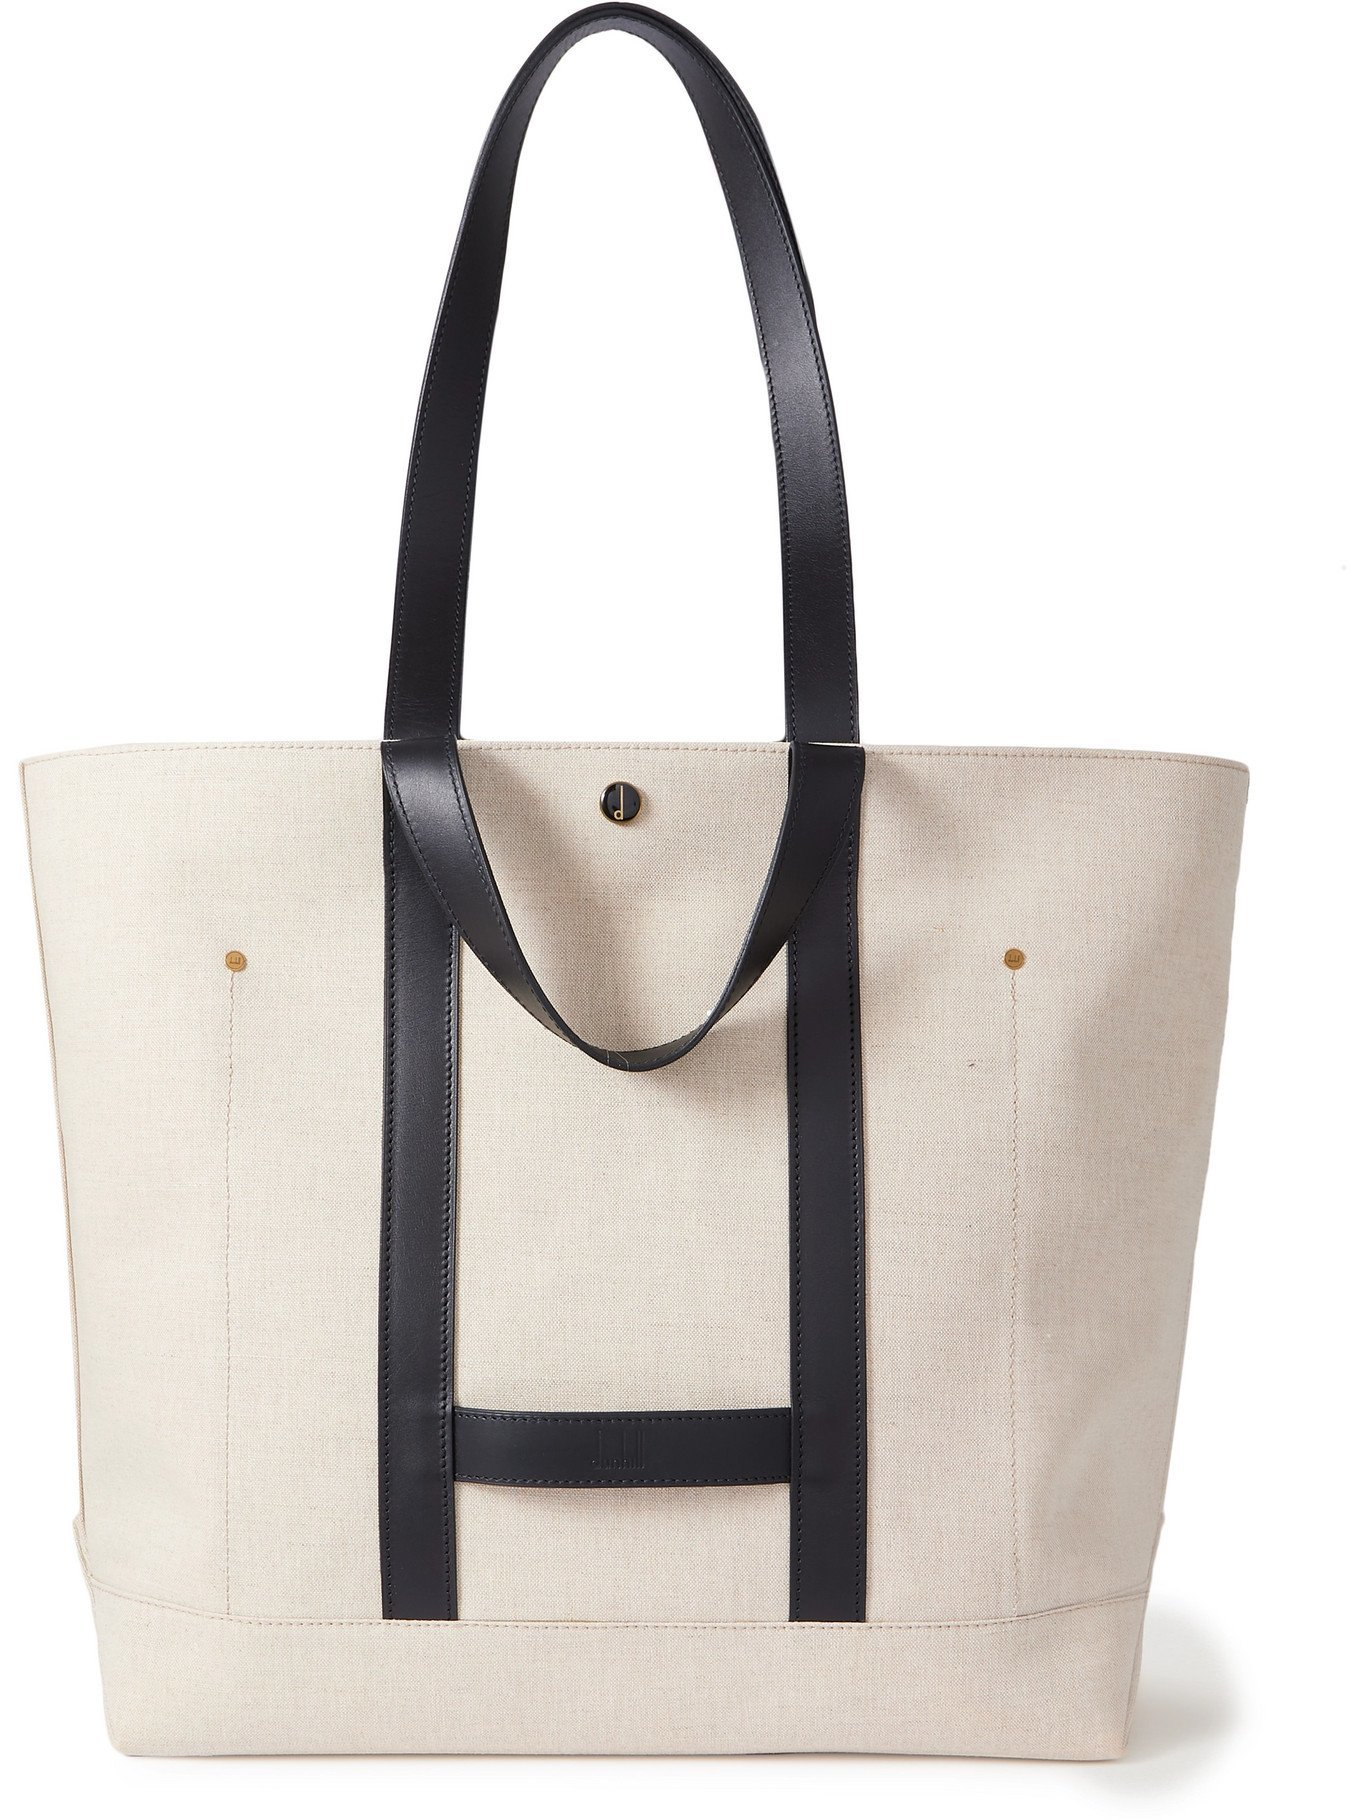 DUNHILL - Leather-Trimmed Linen and Cotton-Blend Tote Bag - Neutrals